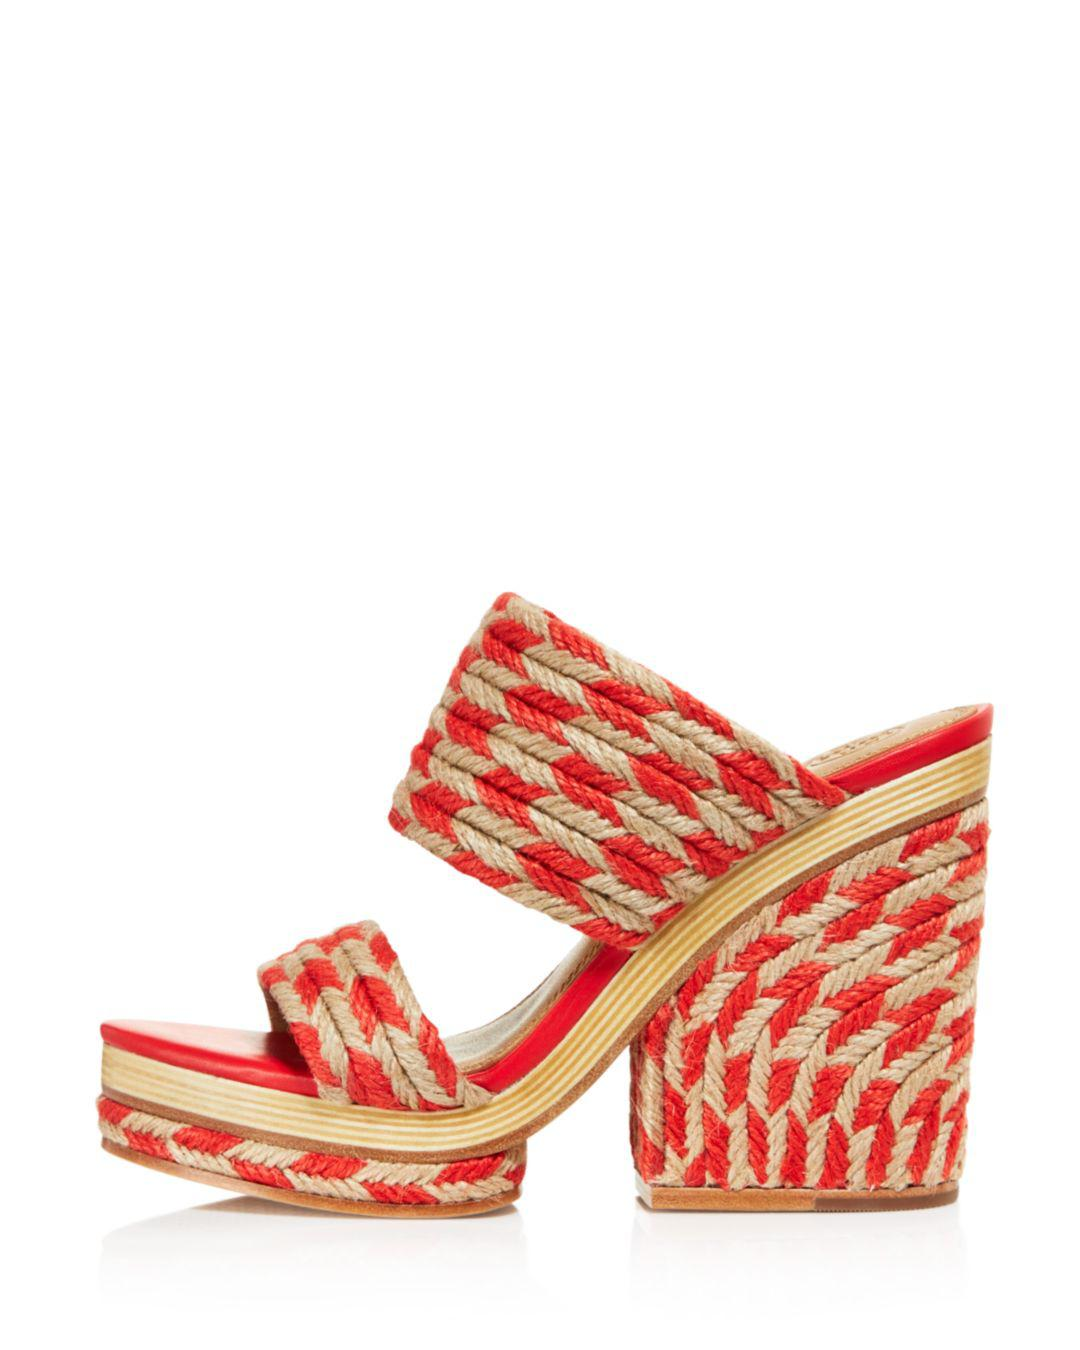 c2fe993bbbf2 Lyst - Tory Burch Women s Lola Woven Jute   Leather High-heel Slide ...